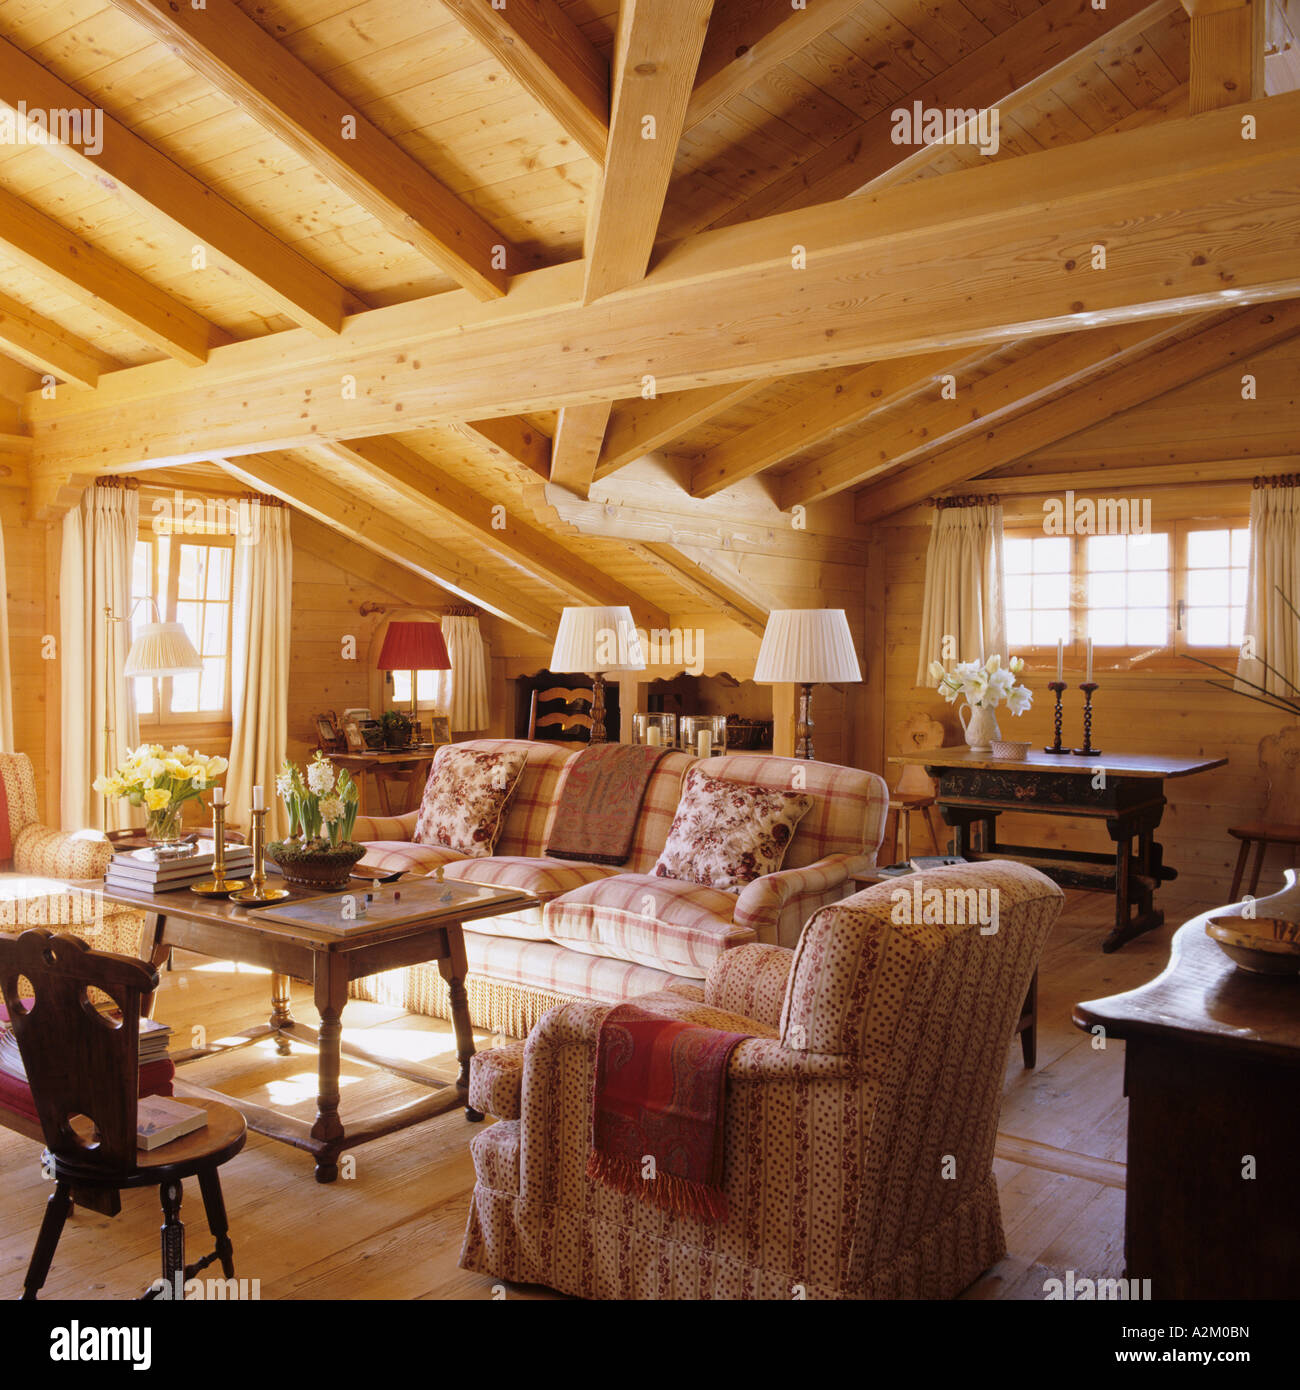 Sitting room with beamed ceiling in a traditional chalet in Switzerland - Stock Image & Swiss Chalet Interior Stock Photos \u0026 Swiss Chalet Interior Stock ...